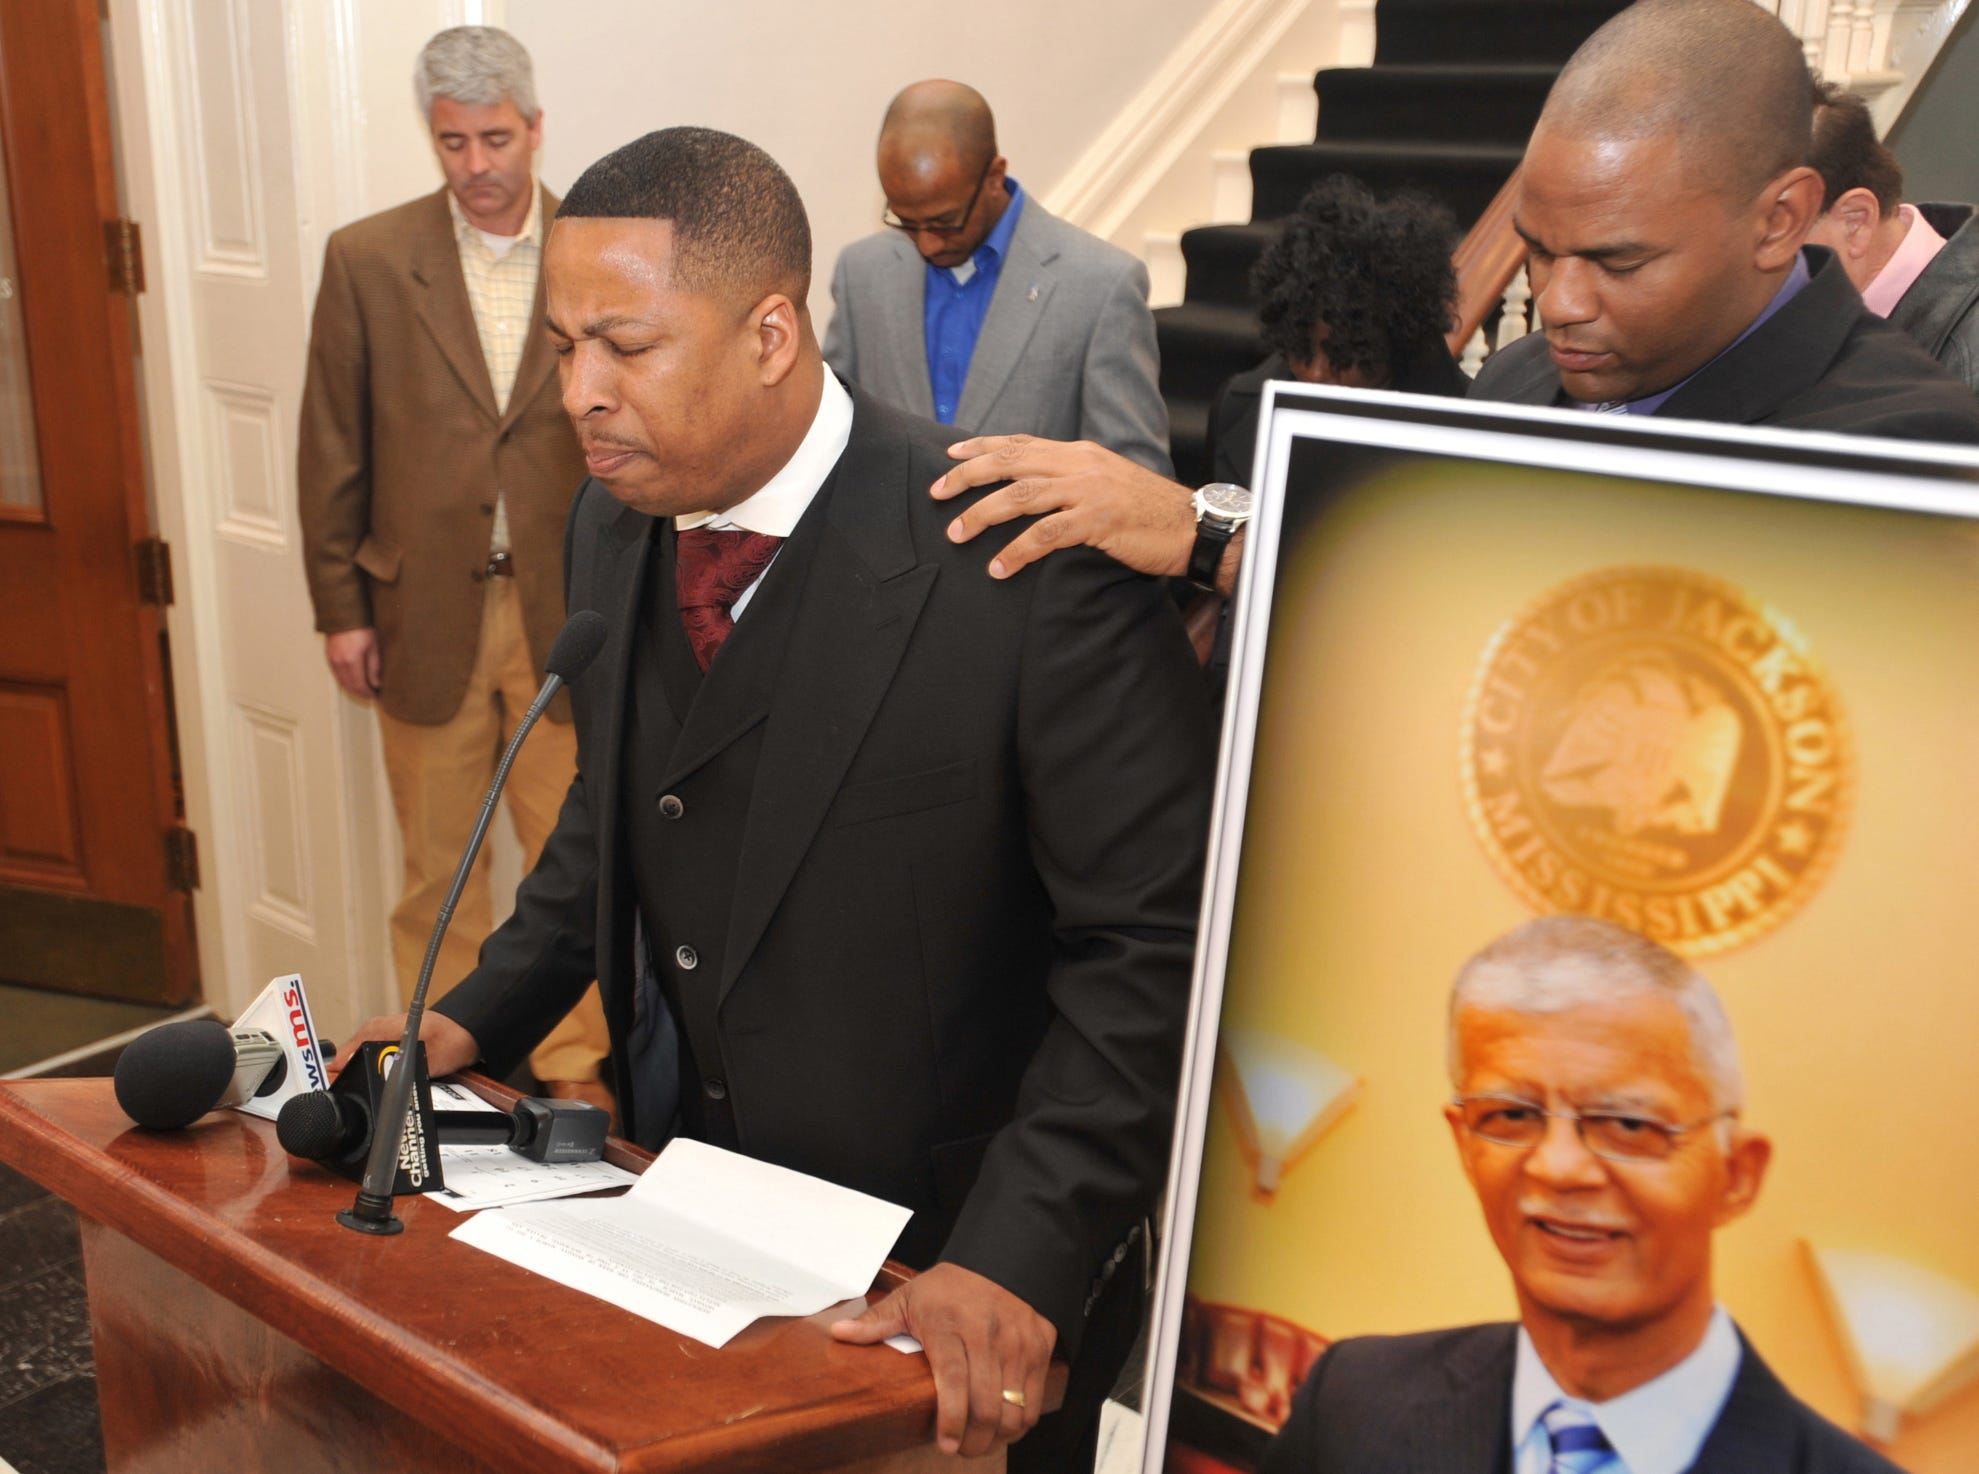 The Rev. Roderick Richardson, left, of The Word Center in Jackson, and Jackson Ward 4 City Councilman De'Keither Stamps lead prayers near a portrait of the late Jackson Mayor Chokwe Lumumba Tuesday at City Hall. Jackson City Council members declared the next seven days a period of prayer, mourning and reflection on the accomplishments of Lumumba.